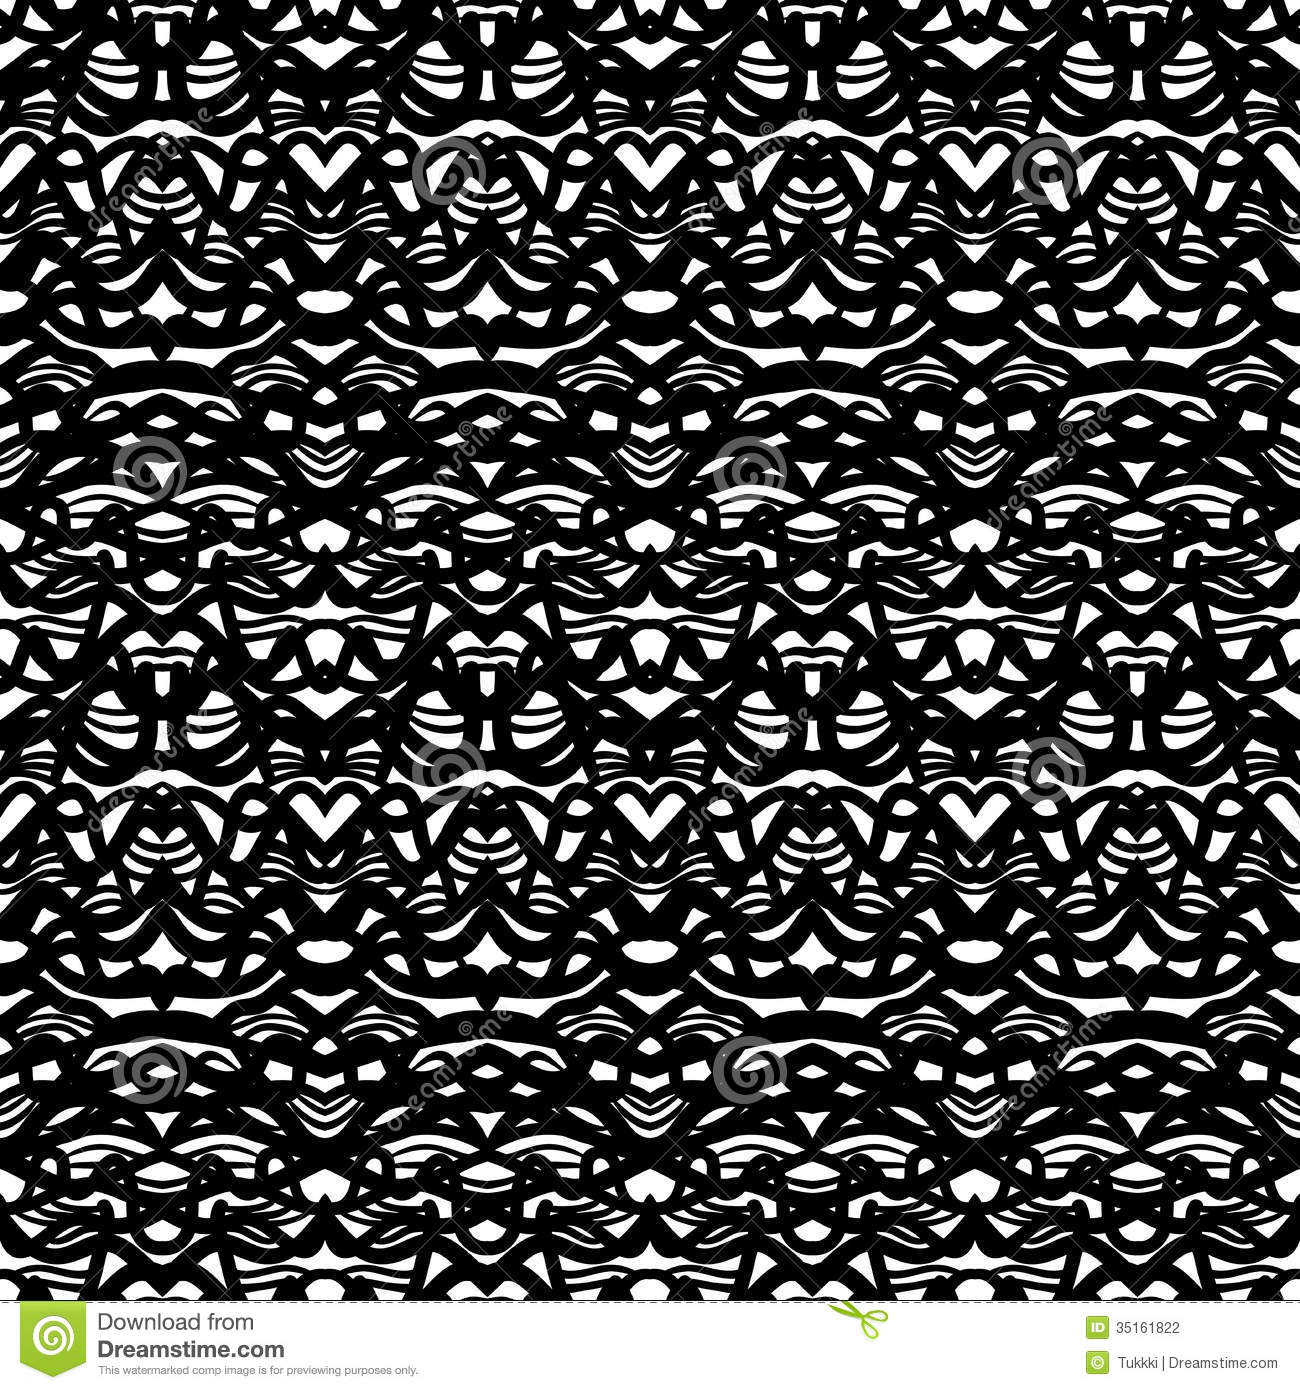 Ethnic pattern in black and Black And White Tribal Print Wallpaper